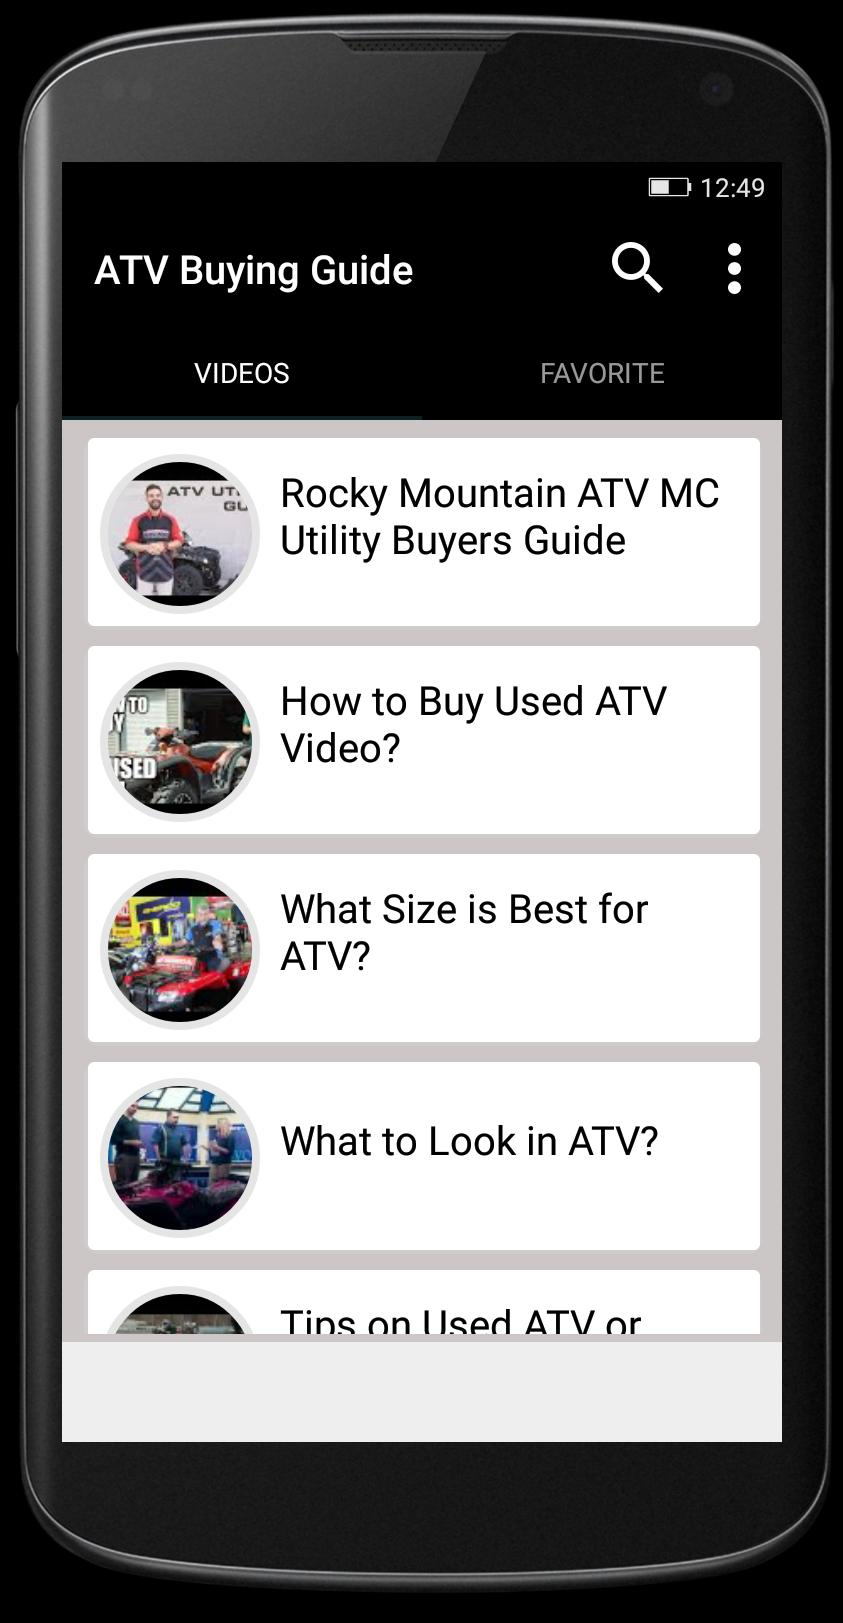 ATV Buying Guide poster